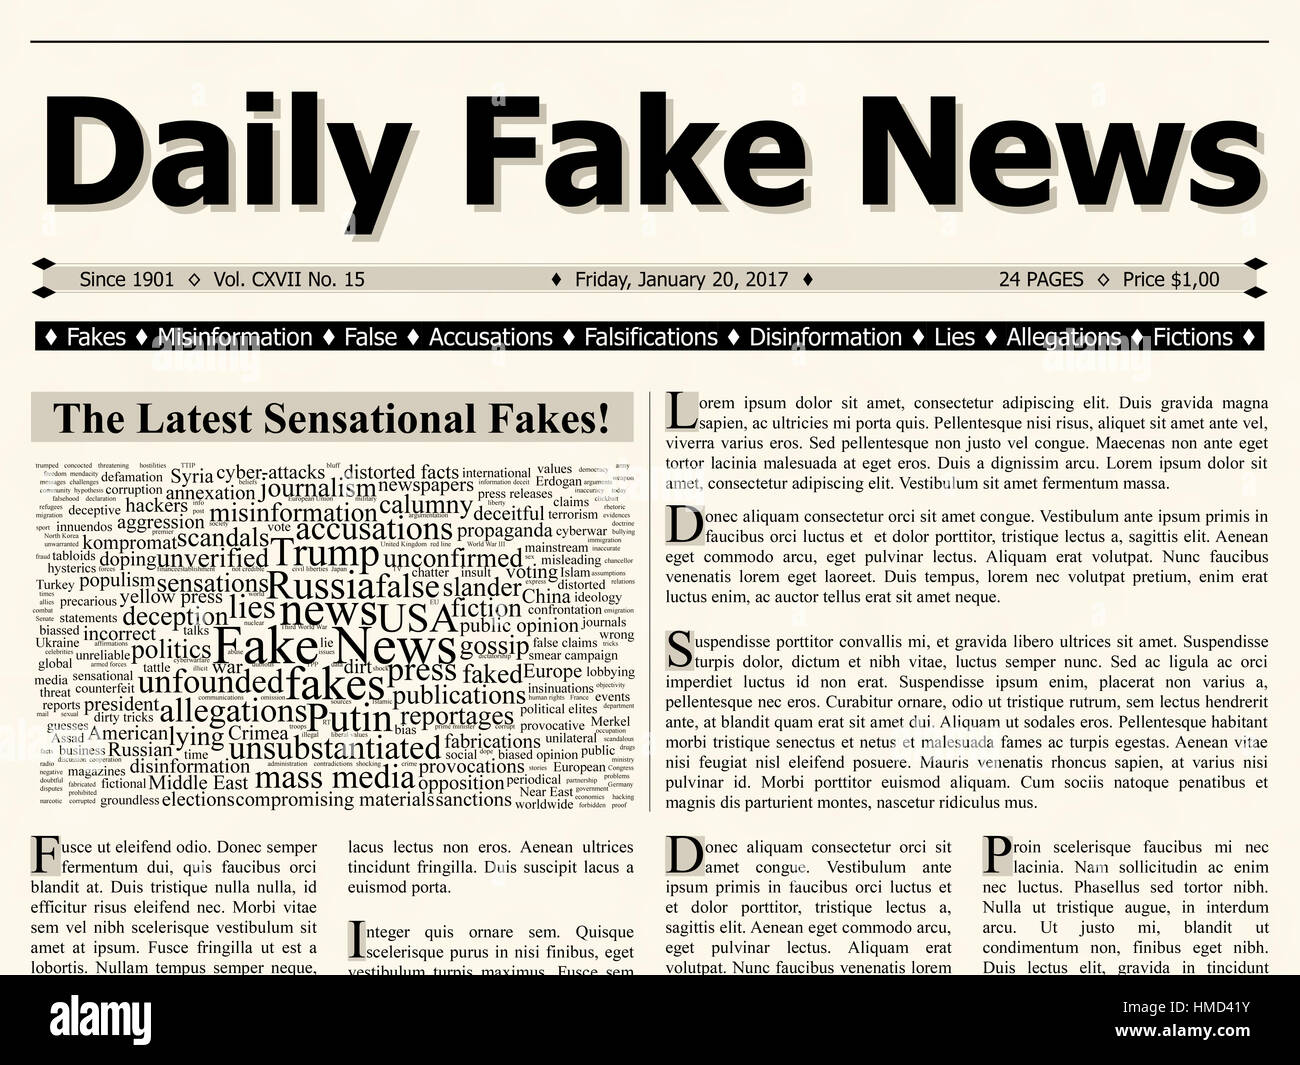 Front page of daily fake news mainstream newspaper title